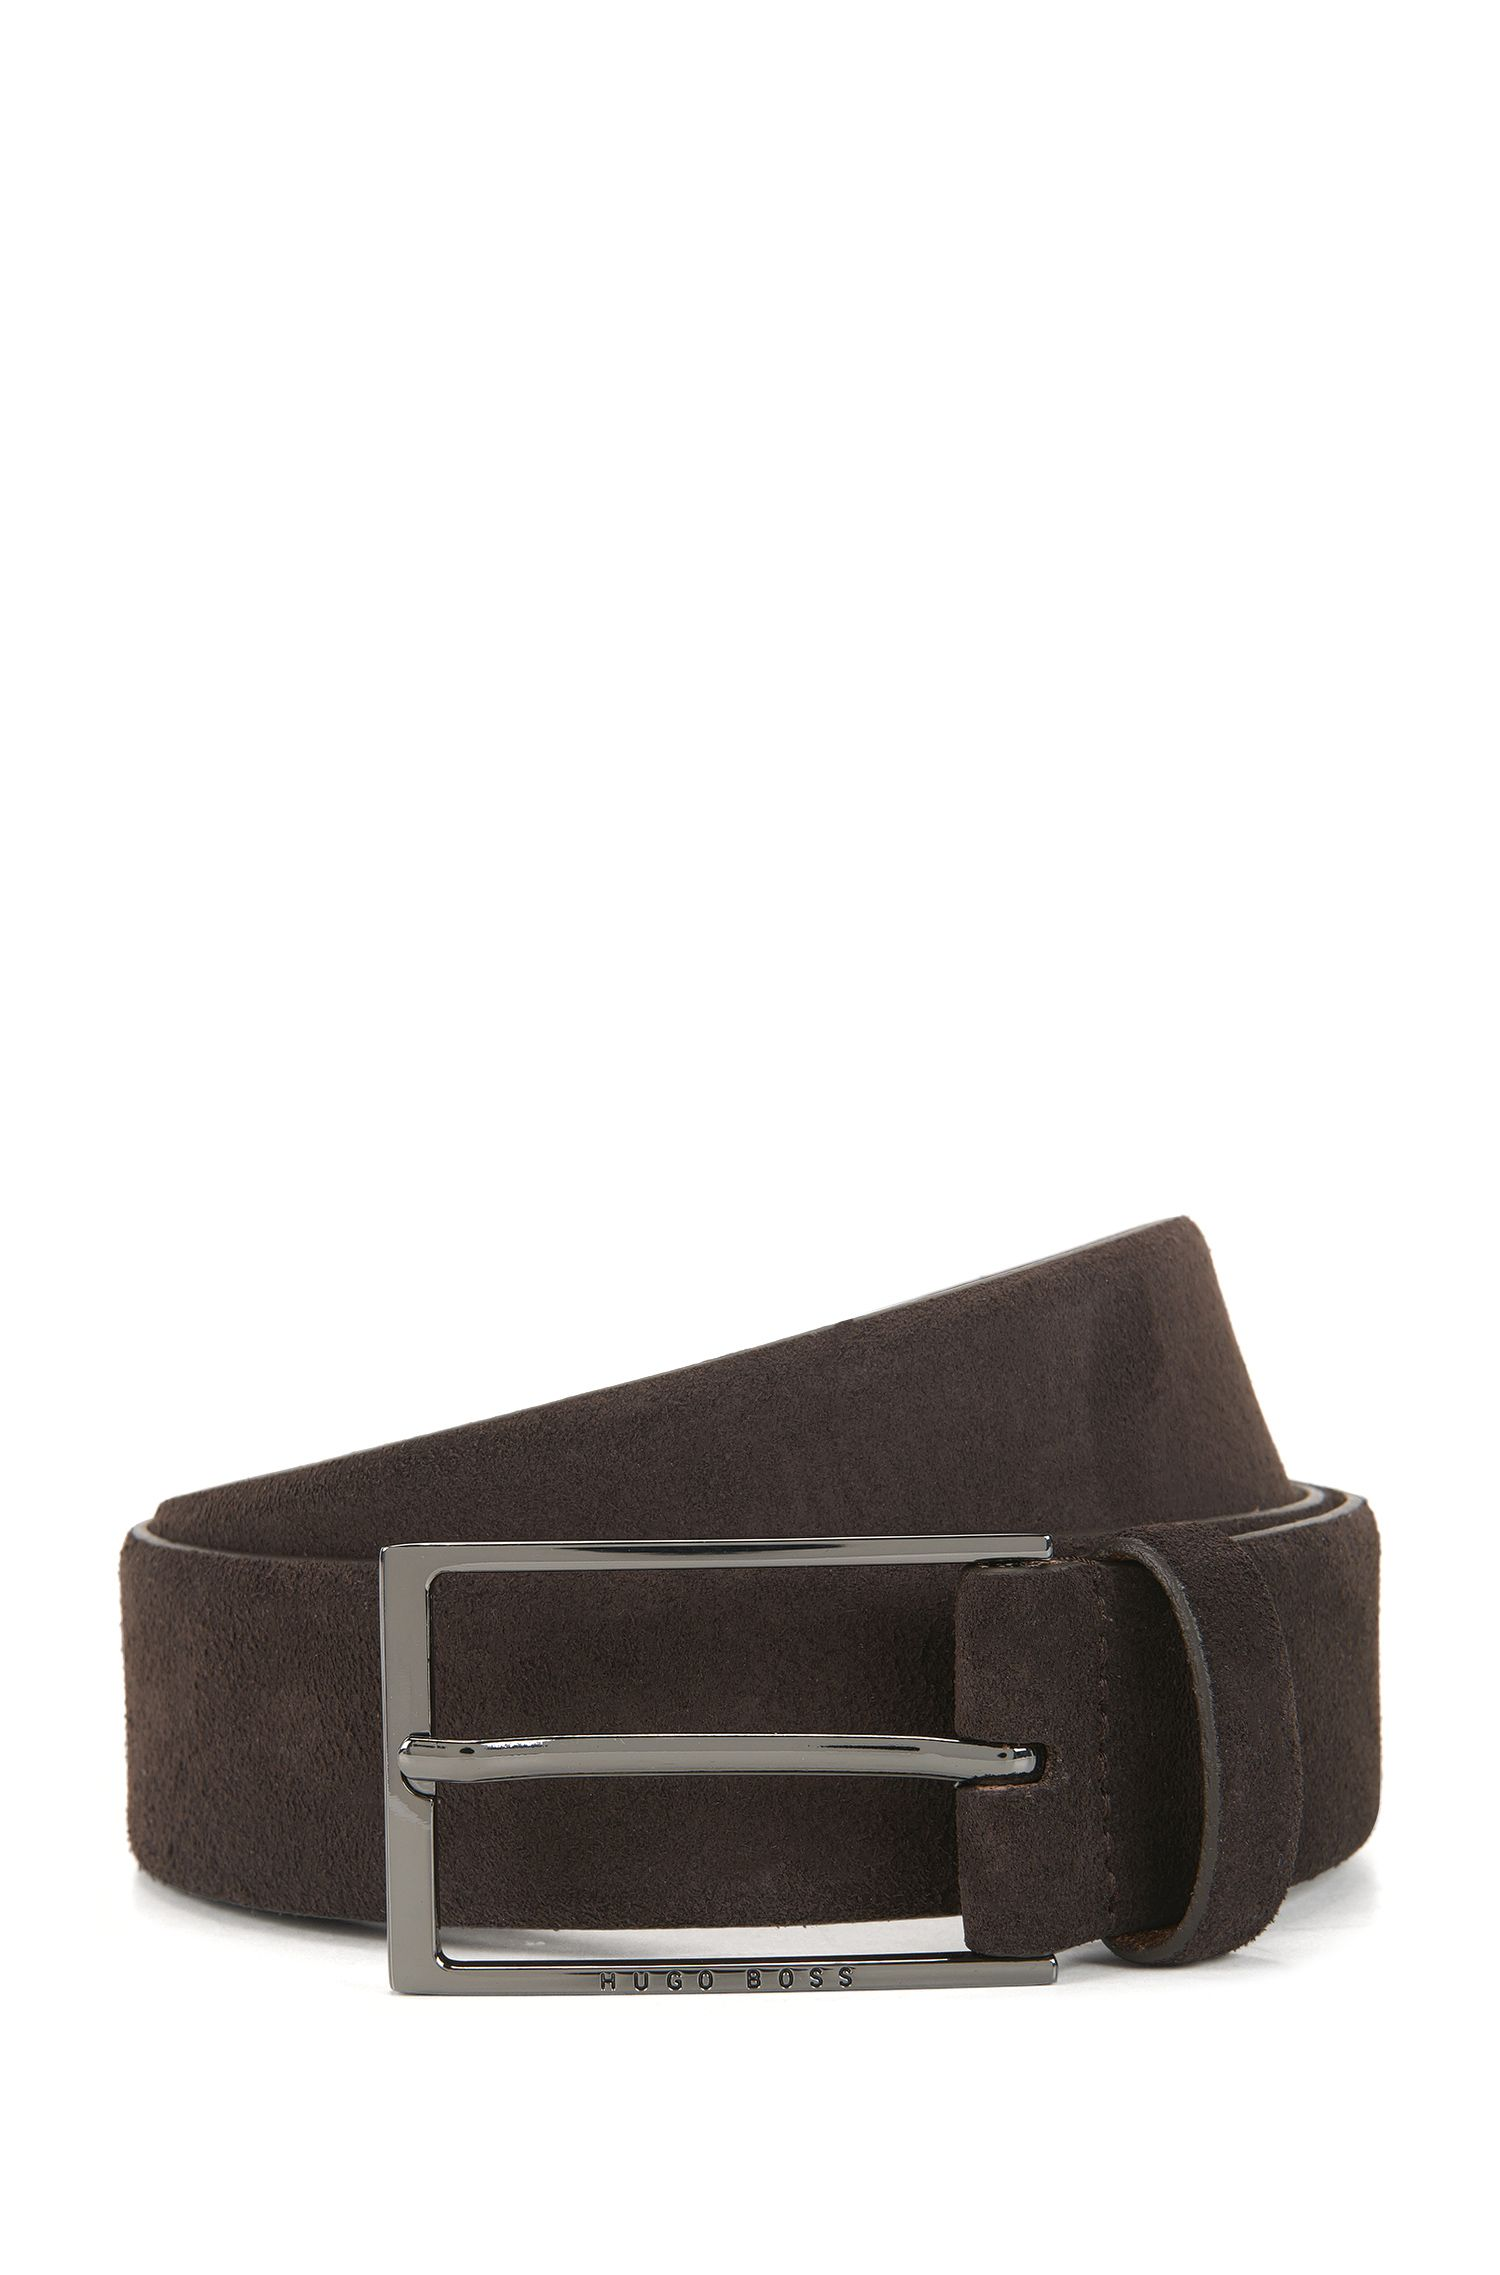 Soft suede leather belt with polished gunmetal pin buckle